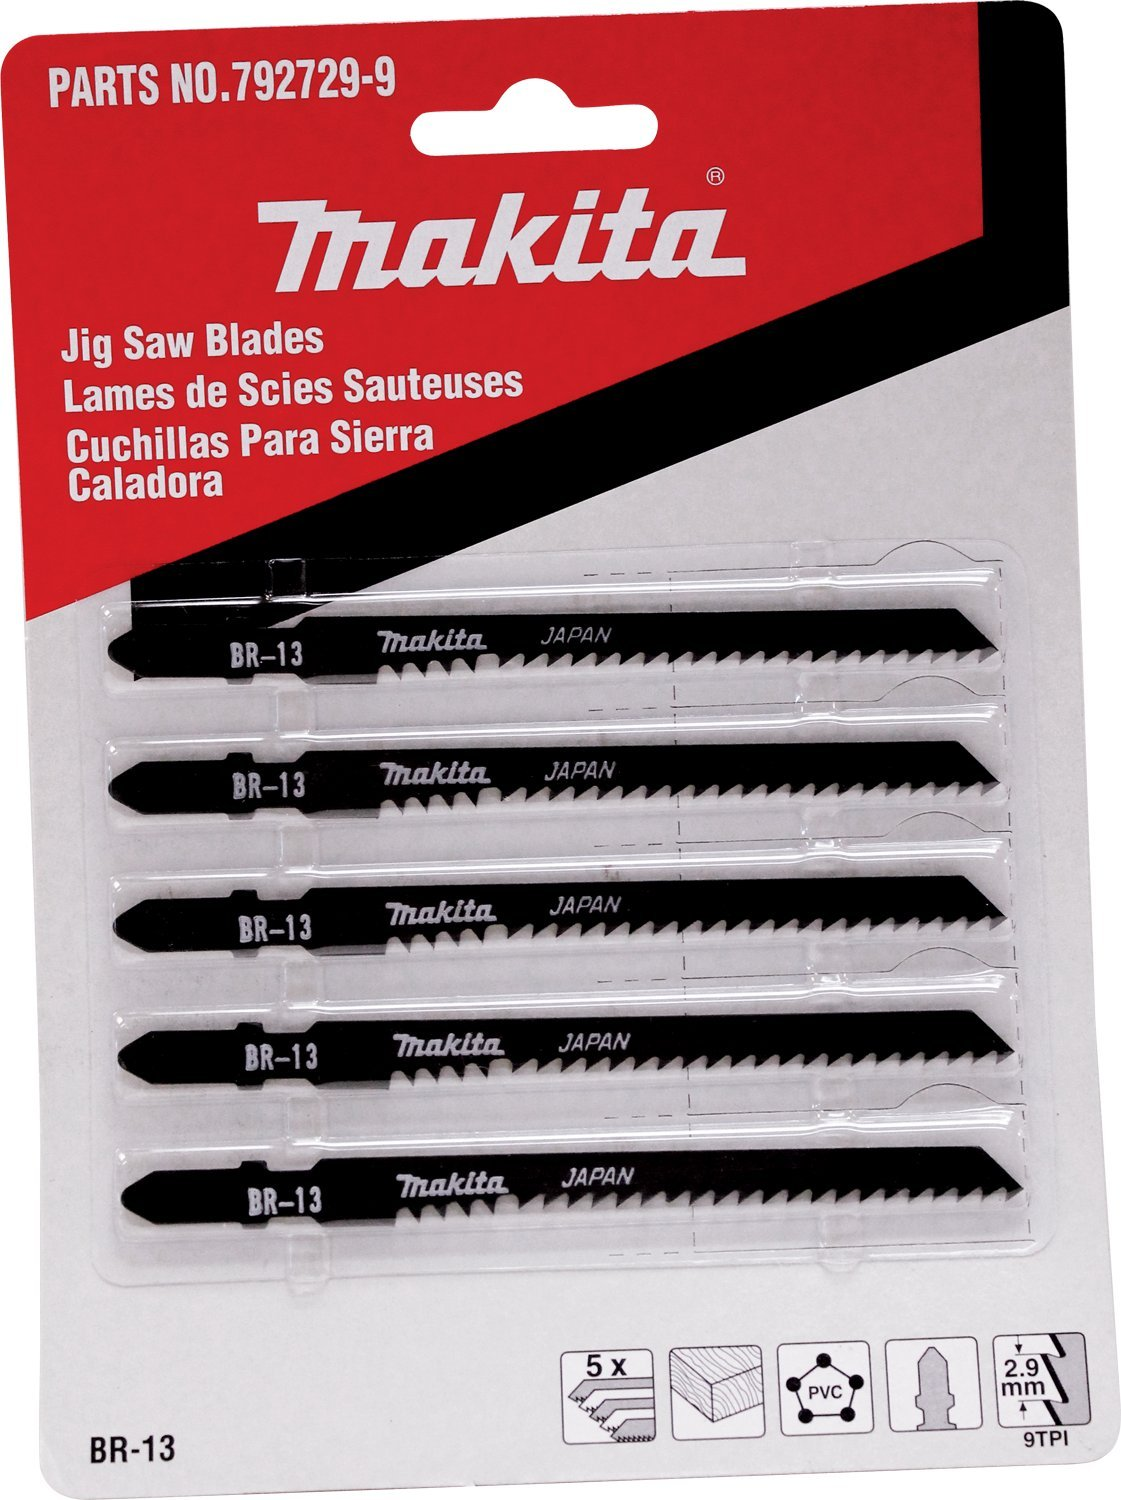 Makita 792729 9 jig saw blade br 13 5 pack makita jigsaw blades makita 792729 9 jig saw blade br 13 5 pack makita jigsaw blades amazon greentooth Images